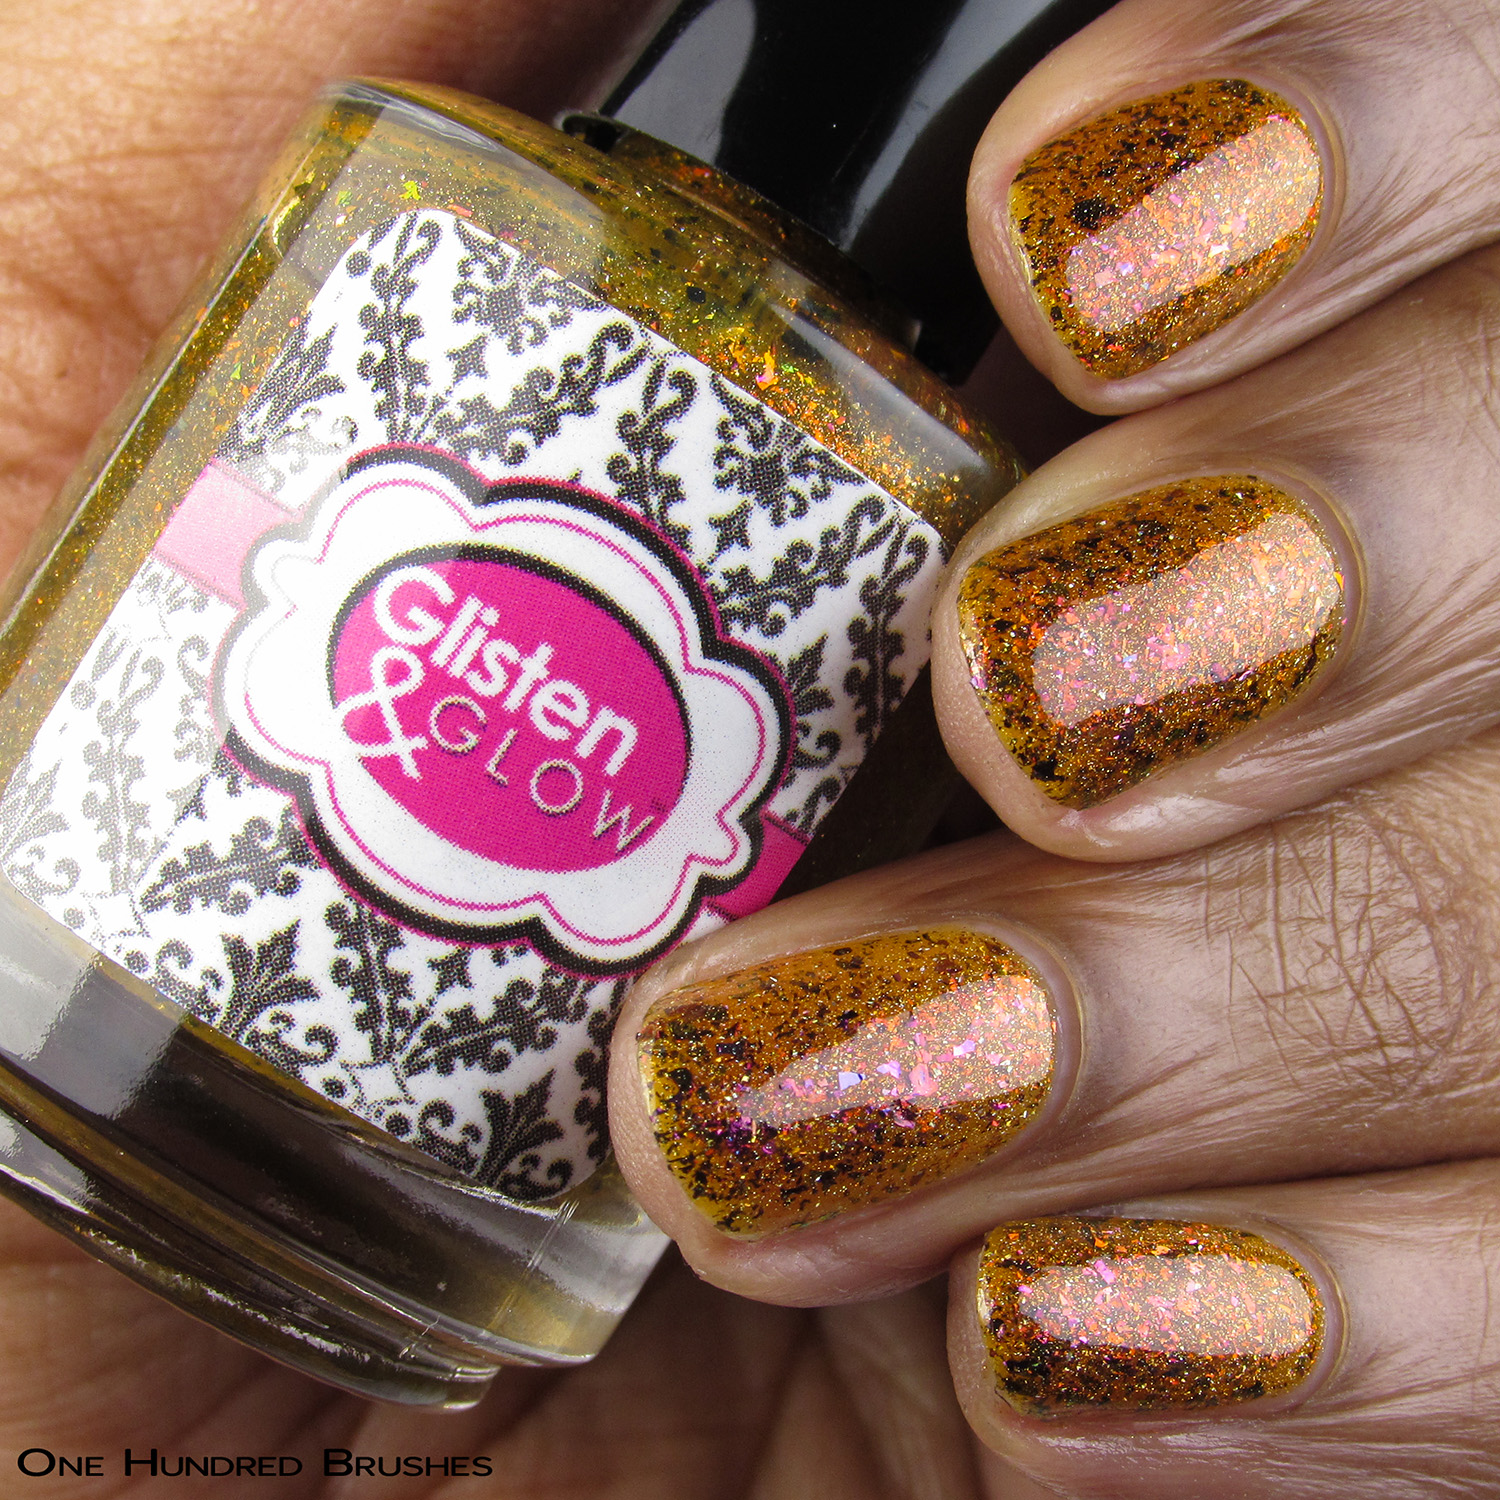 Give em' Pumpkin To Talk About - Glisten & Glow - The Holo Hookup Oct 2019